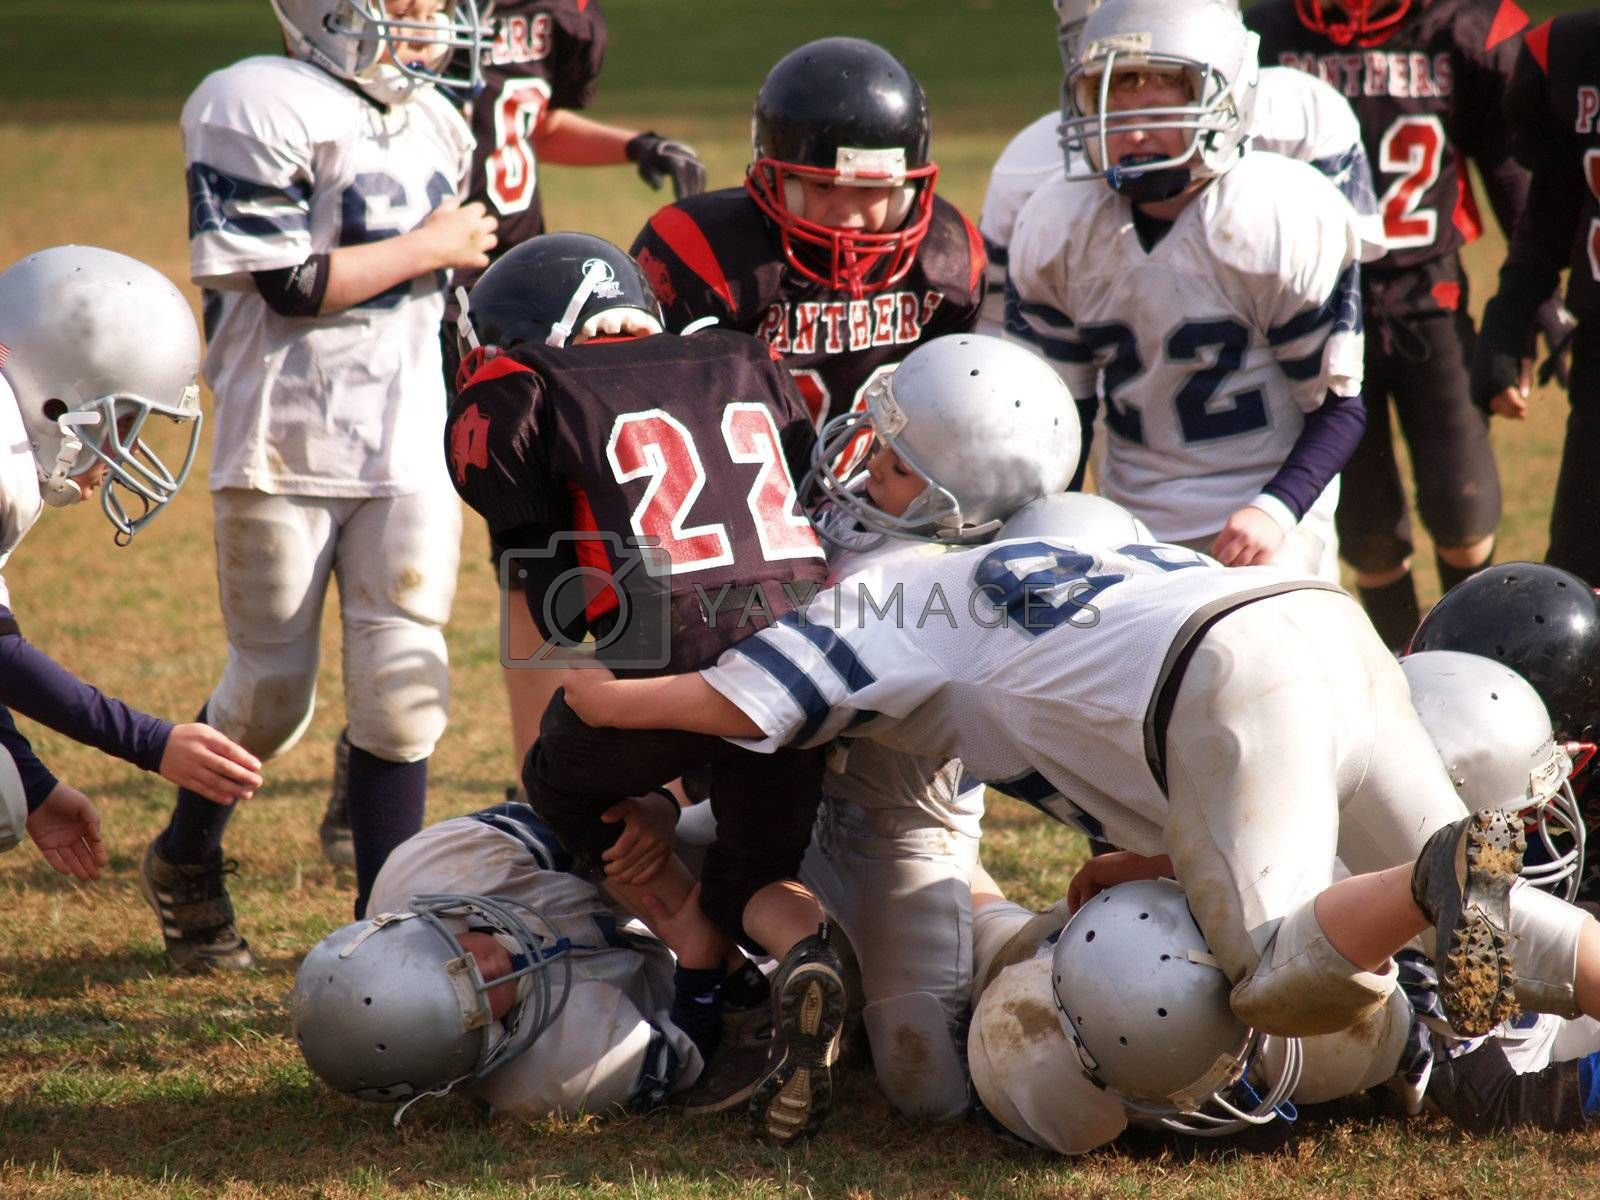 young American football team tackling